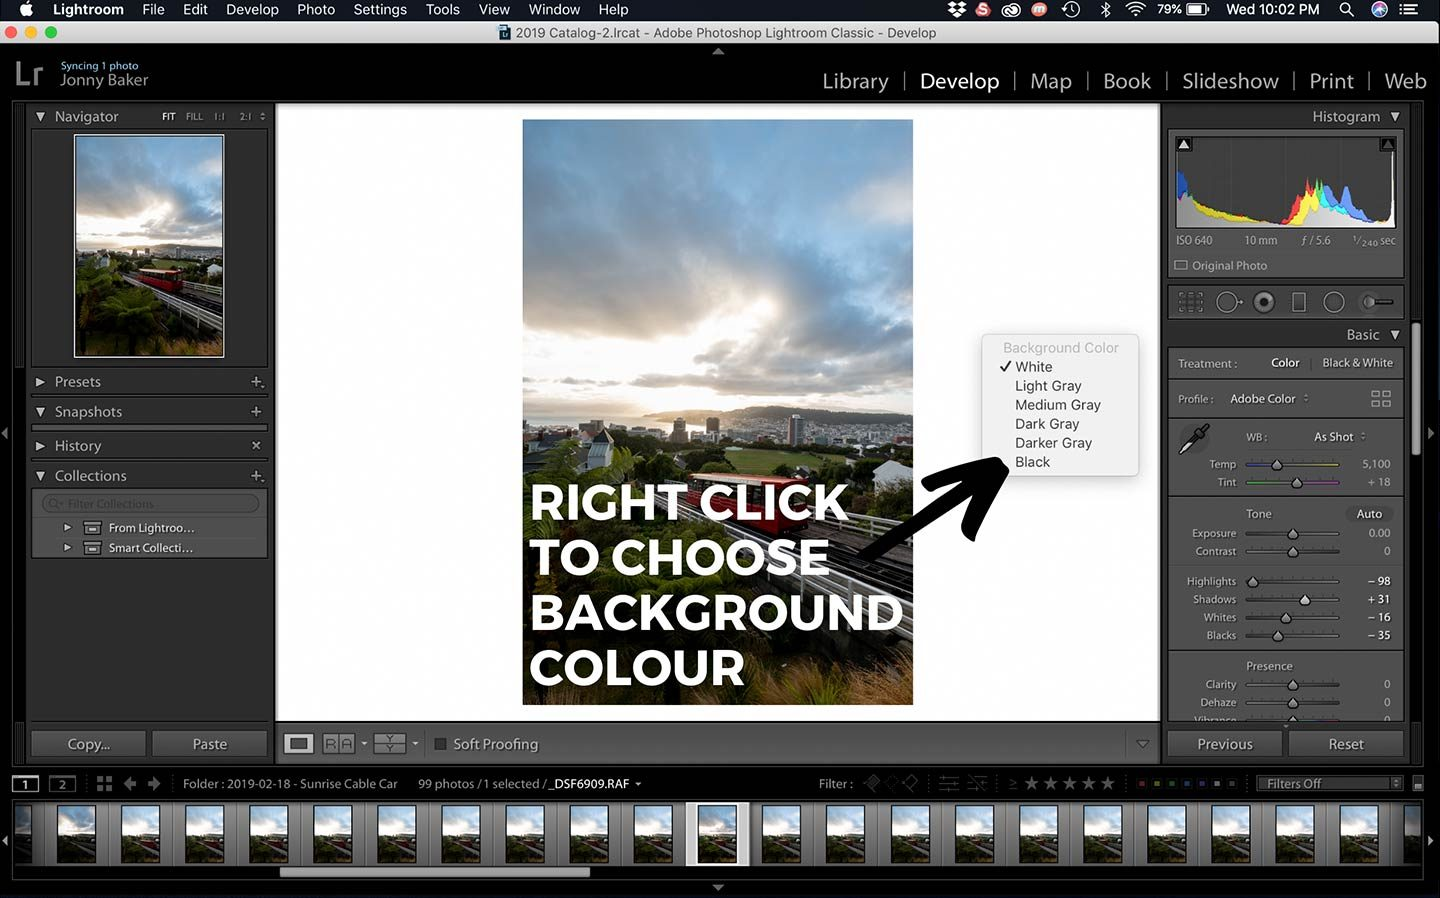 A really simple Lightroom Hack that is shown in this screenshot is how to change the background colour of Lightroom.